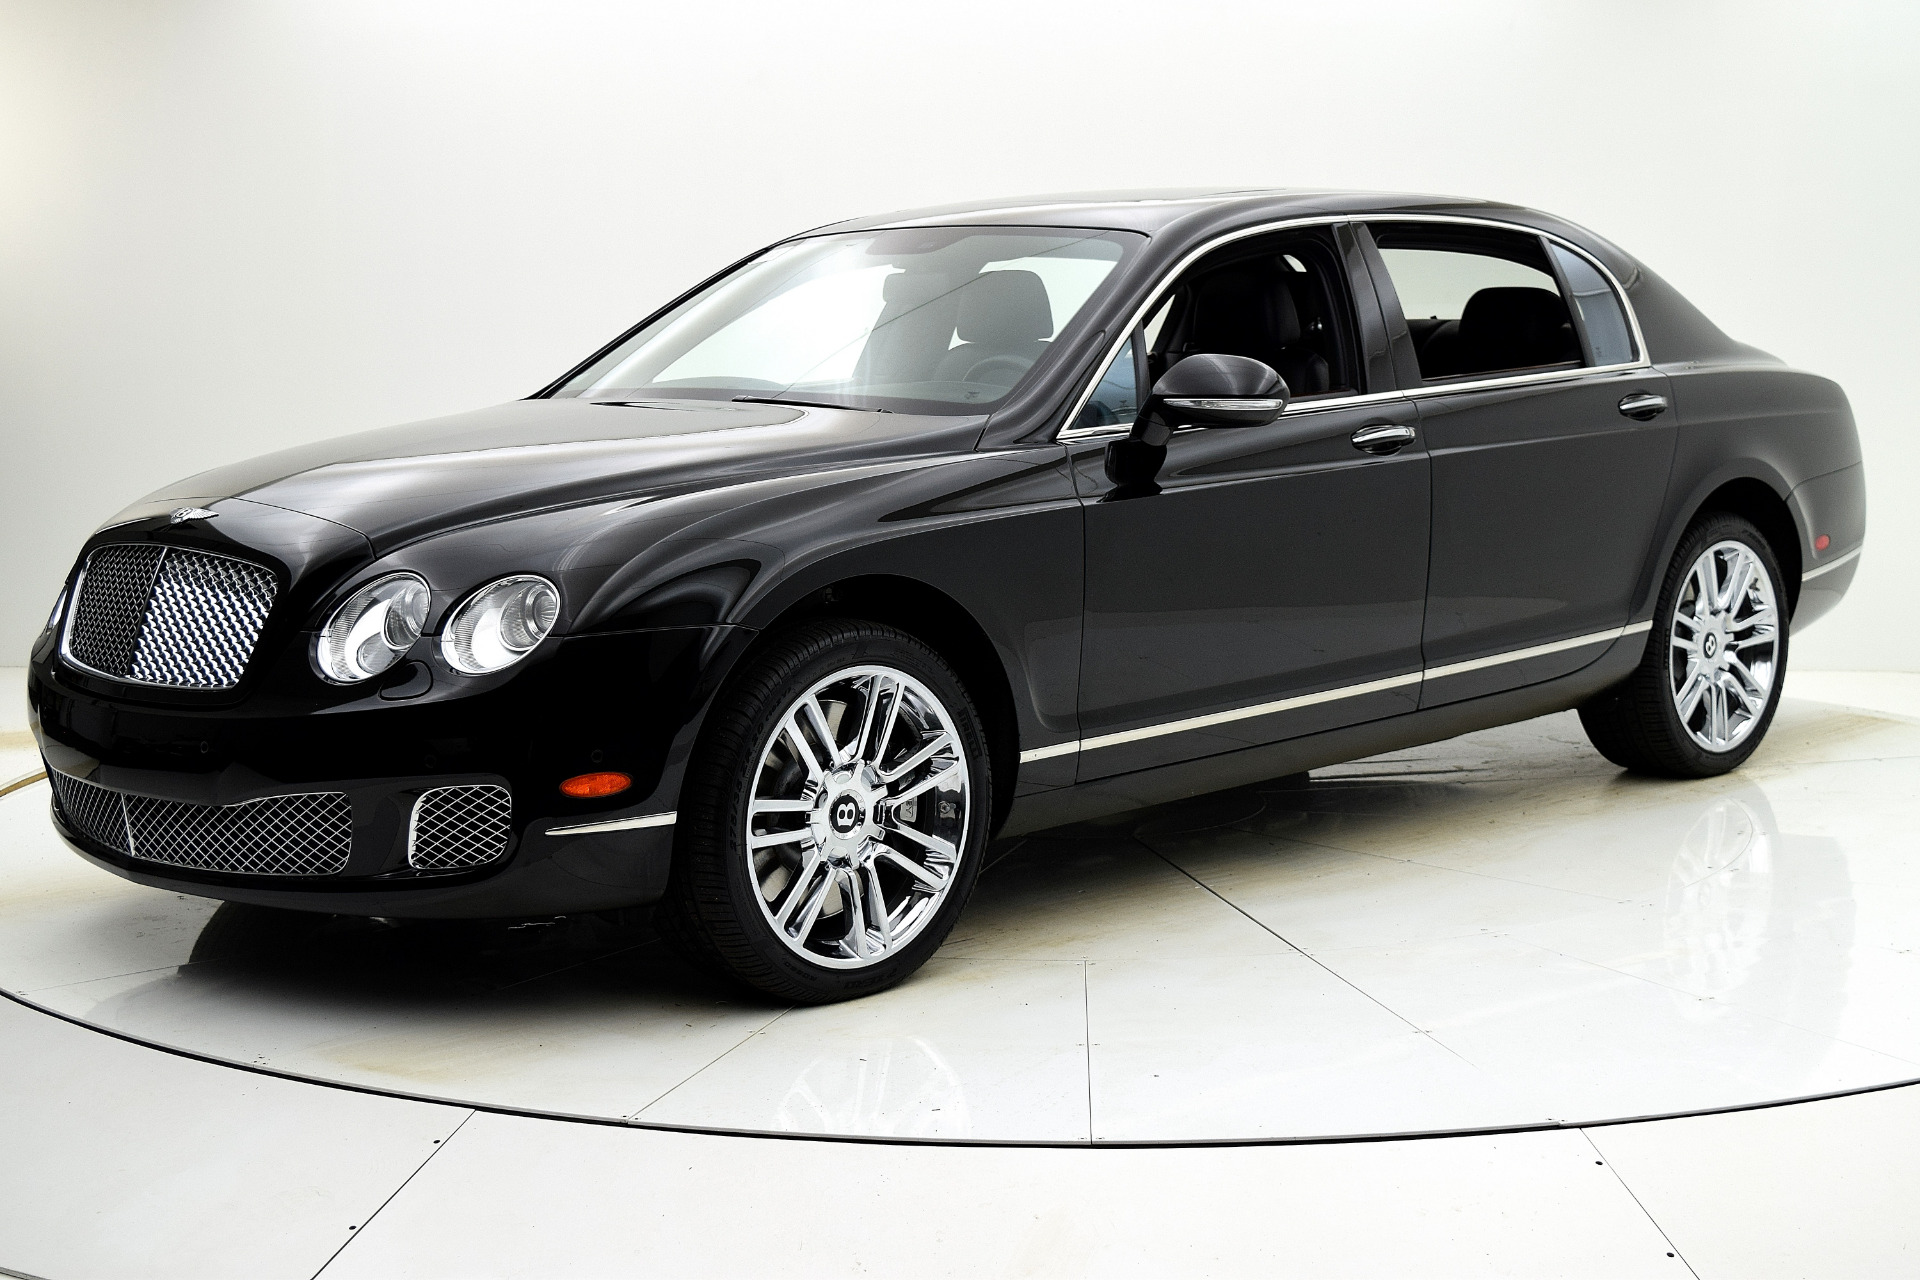 Used 2012 Bentley Continental Flying Spur for sale Sold at Bentley Palmyra N.J. in Palmyra NJ 08065 2